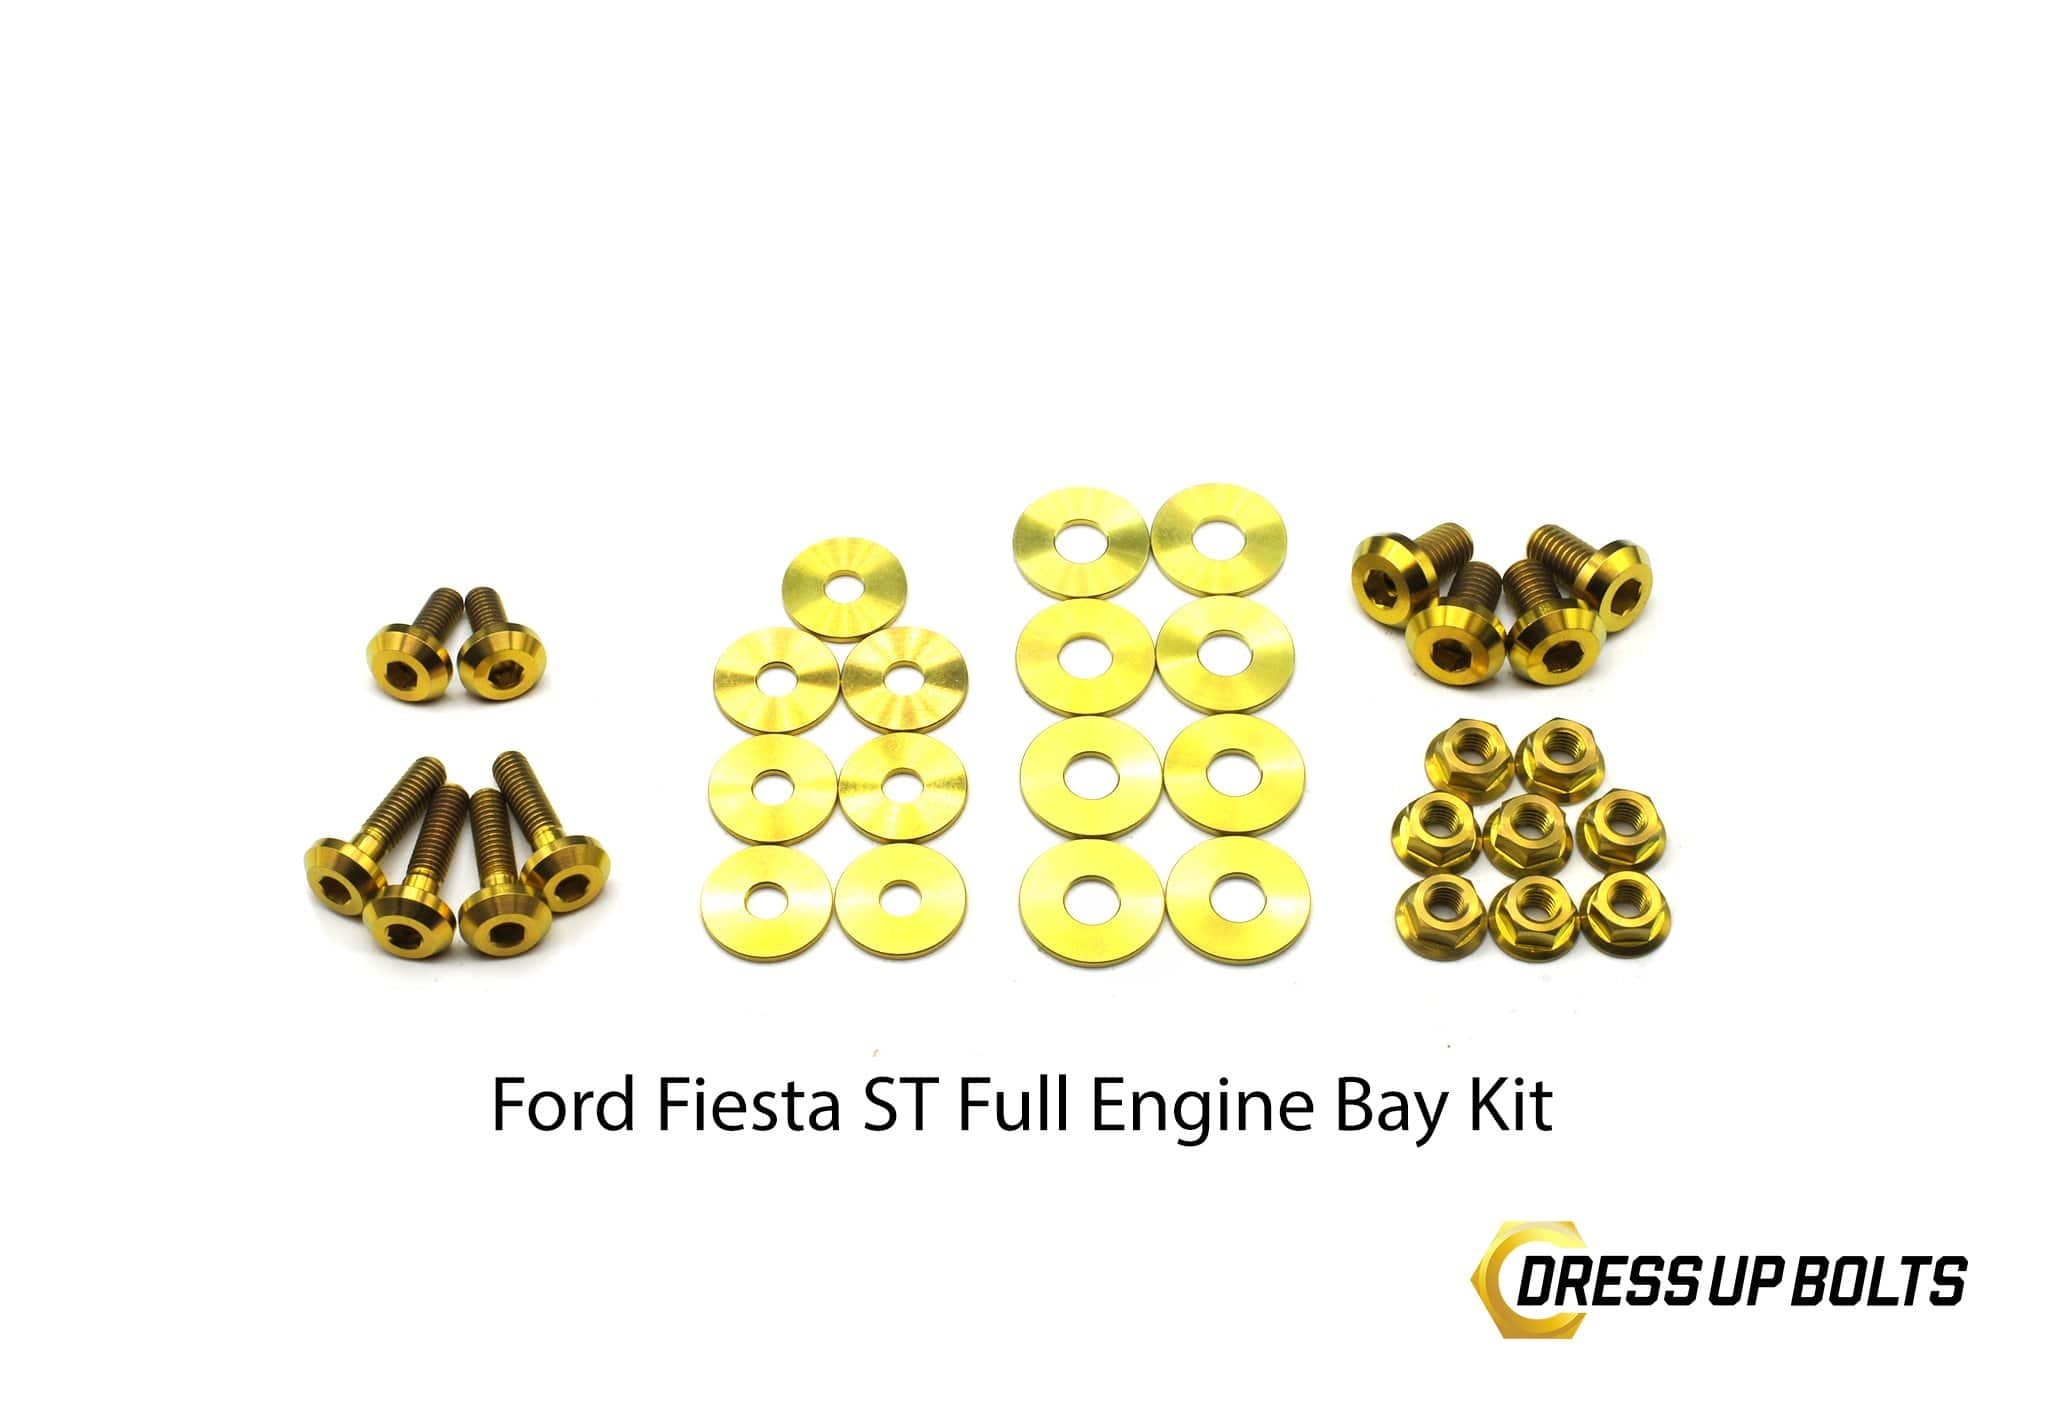 Ford Fiesta ST (2013-2017) Titanium Dress Up Bolt Engine Bay Kit - DressUpBolts.com